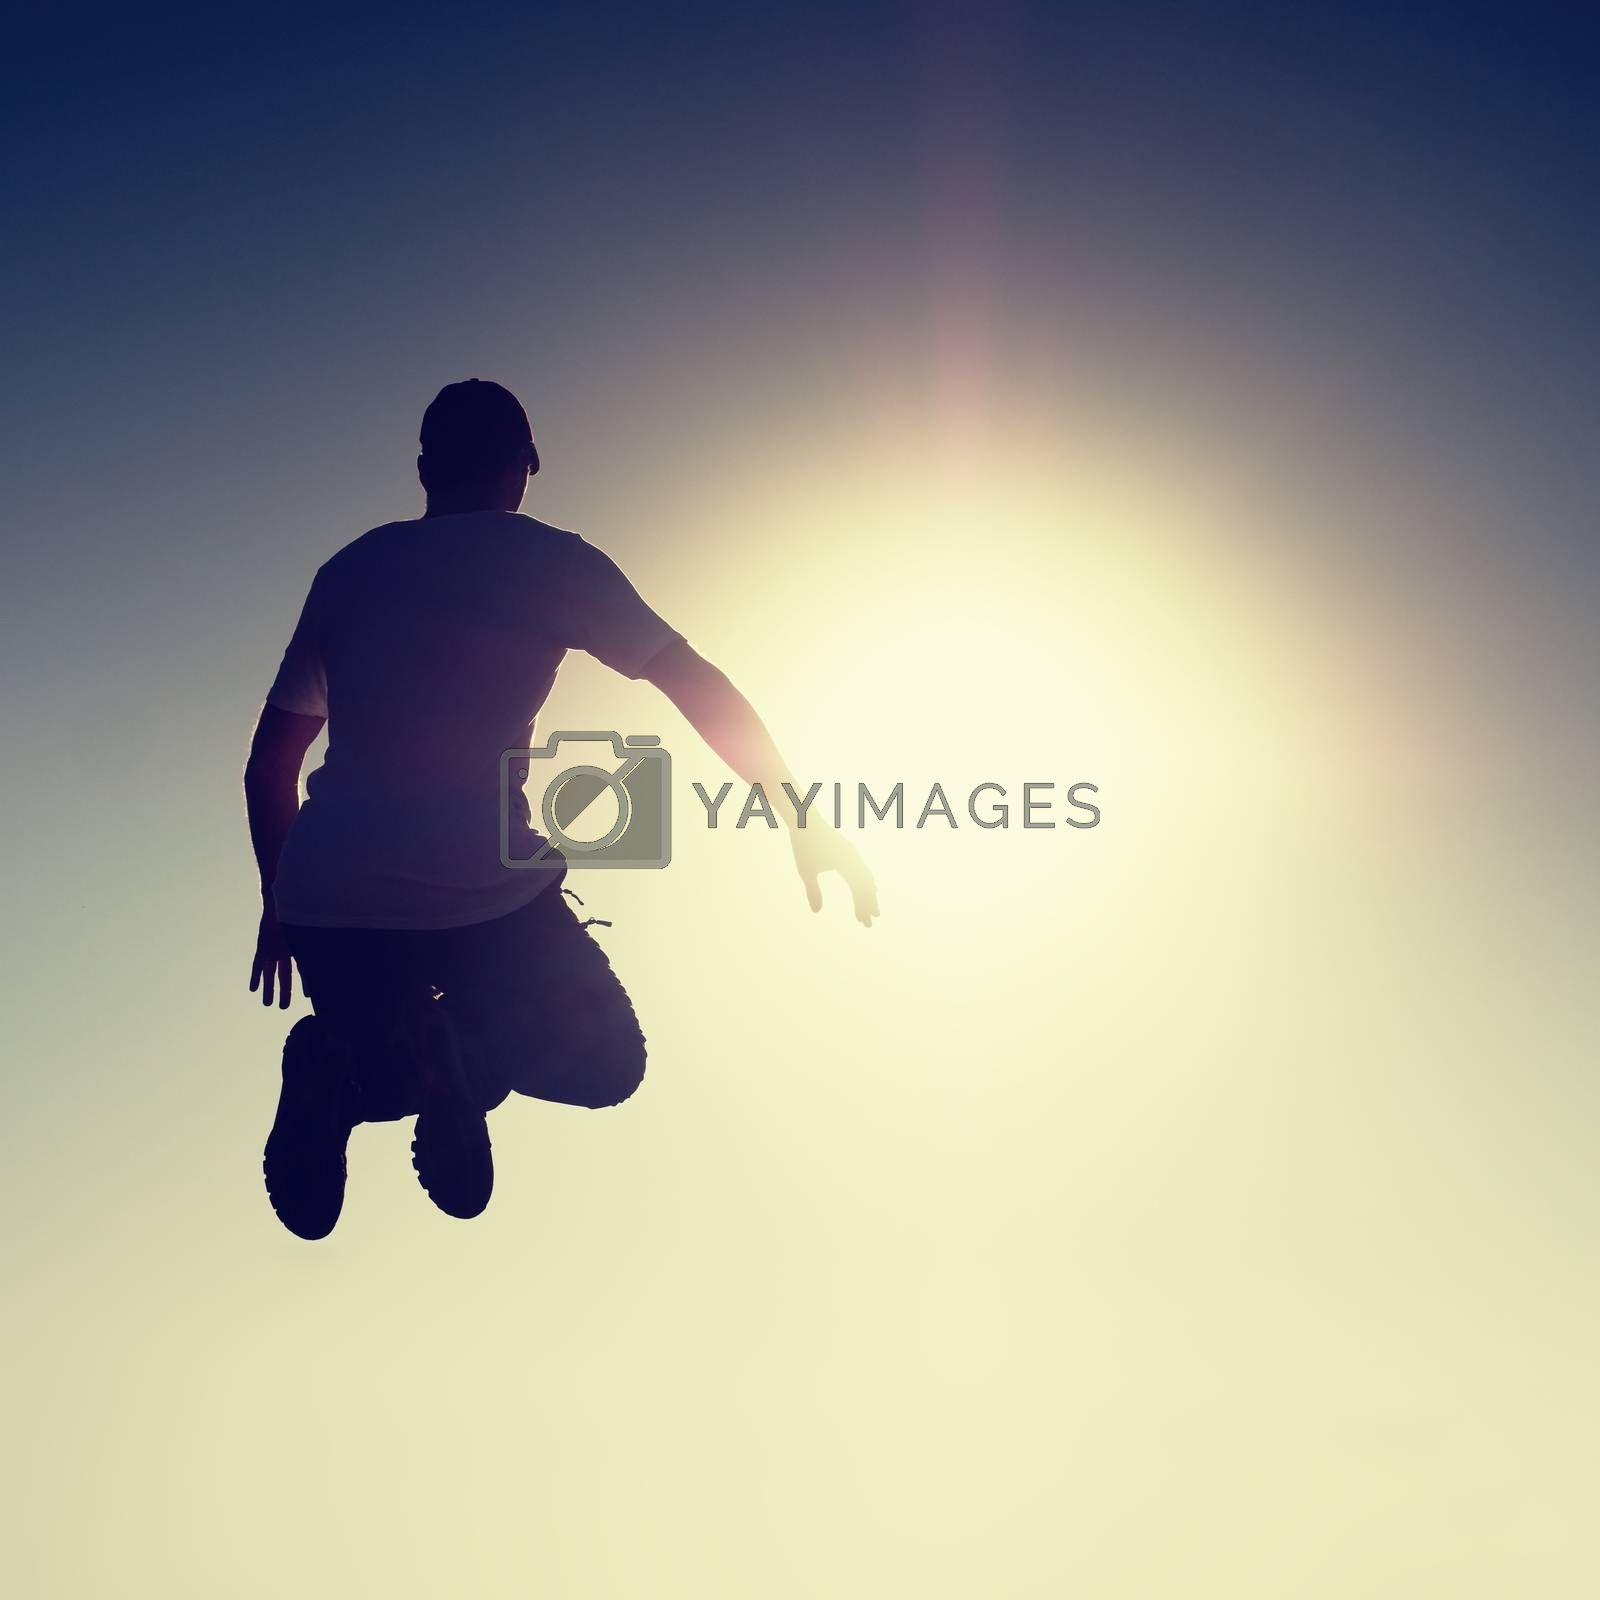 Crazy man is flying over Sun on blue sky background. Silhouette of jumping man and beautiful sunset sky. Element of design. Vintage effect.